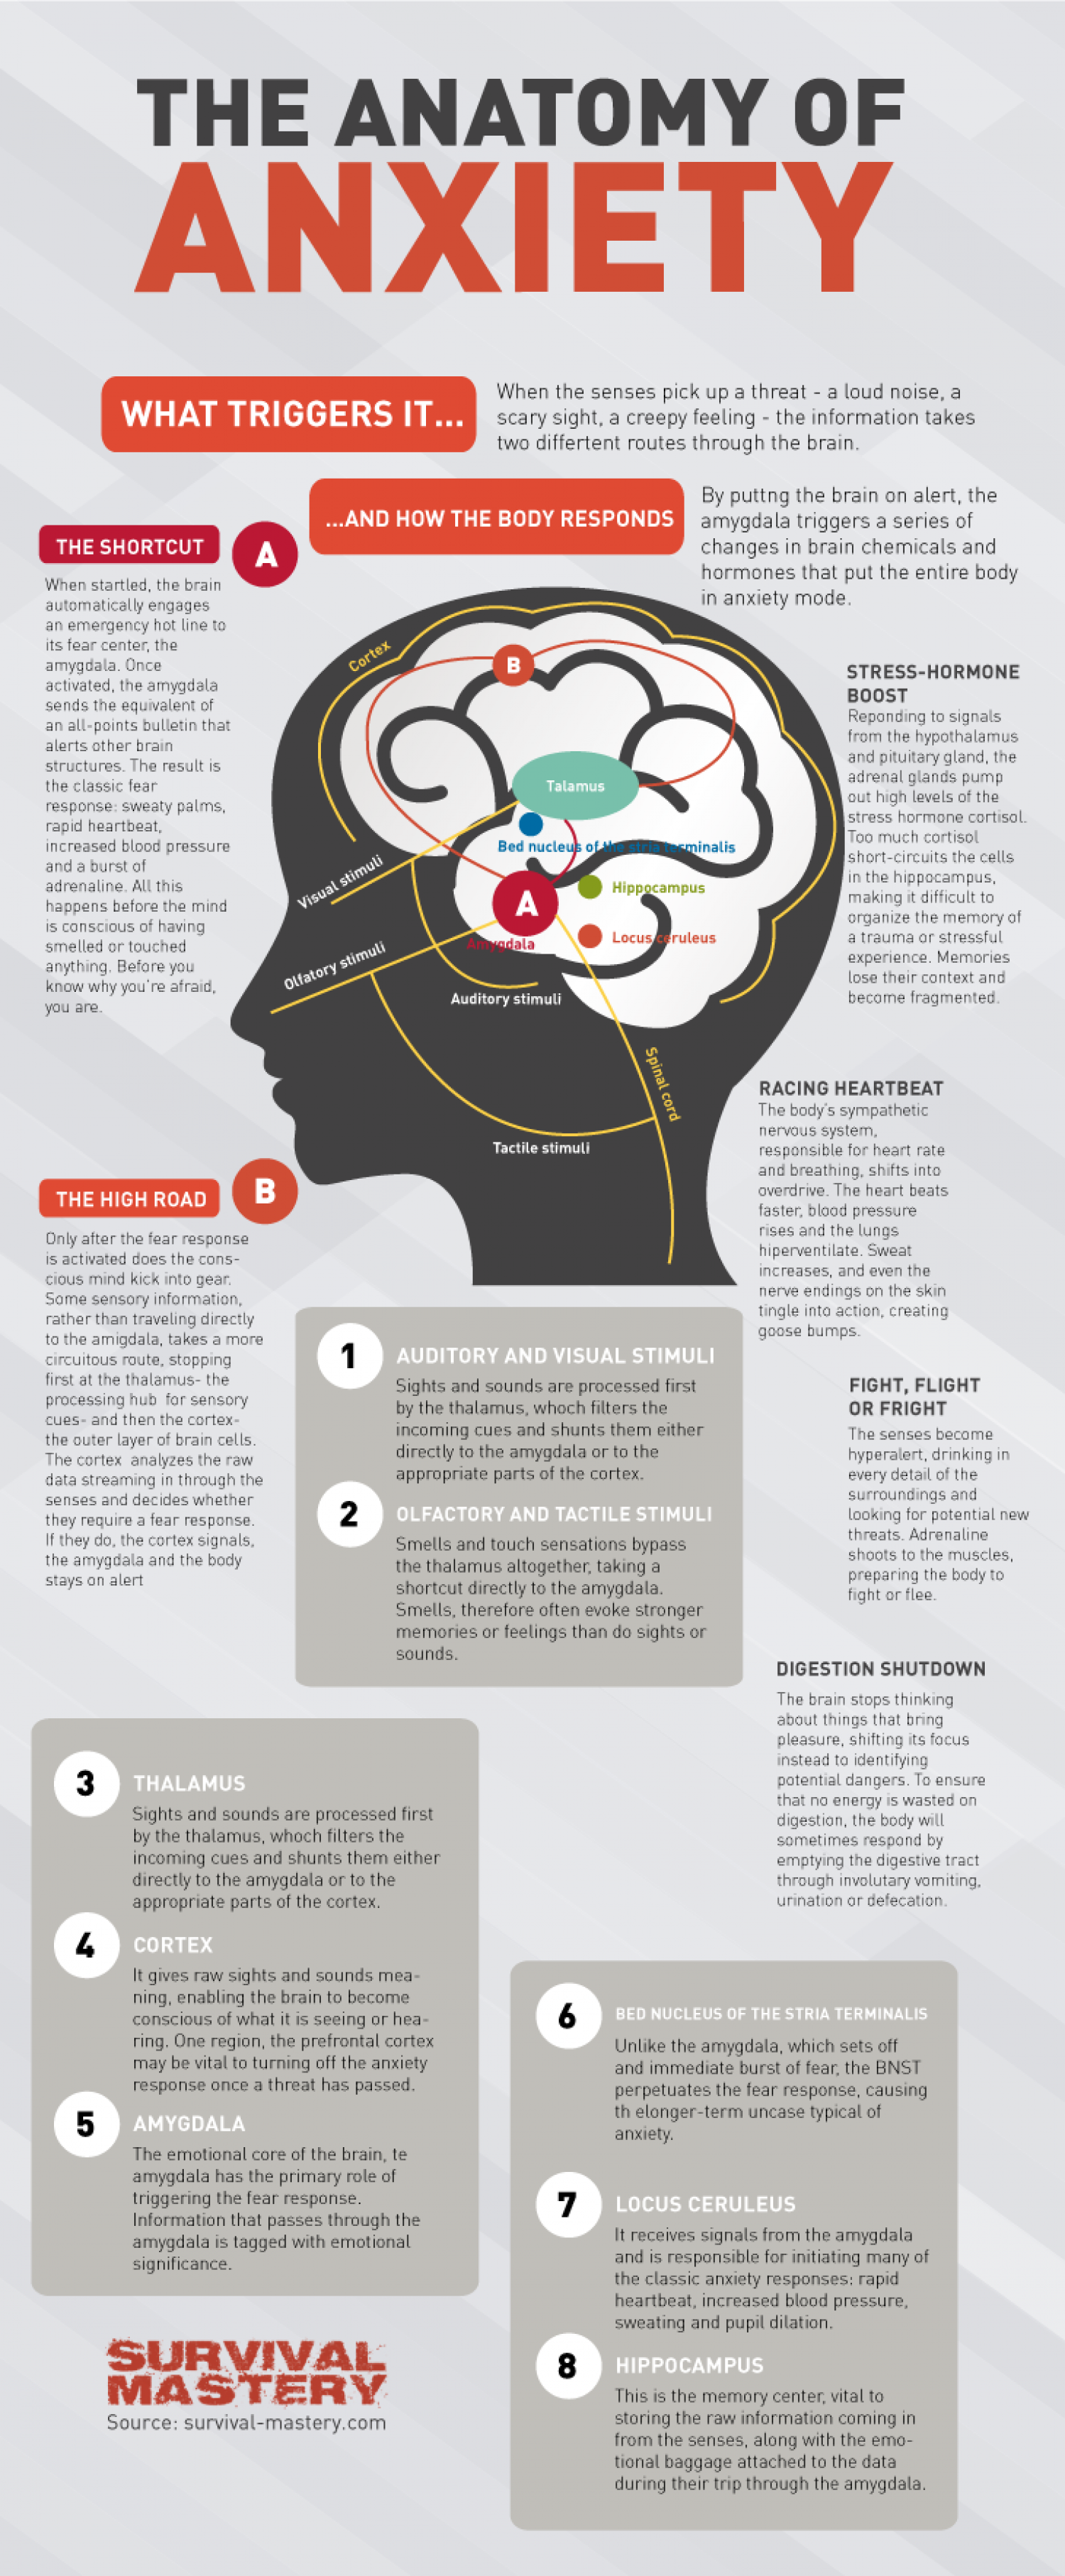 Anatomy of Anxiety | Education | Pinterest | Anatomy, Psychology and ...